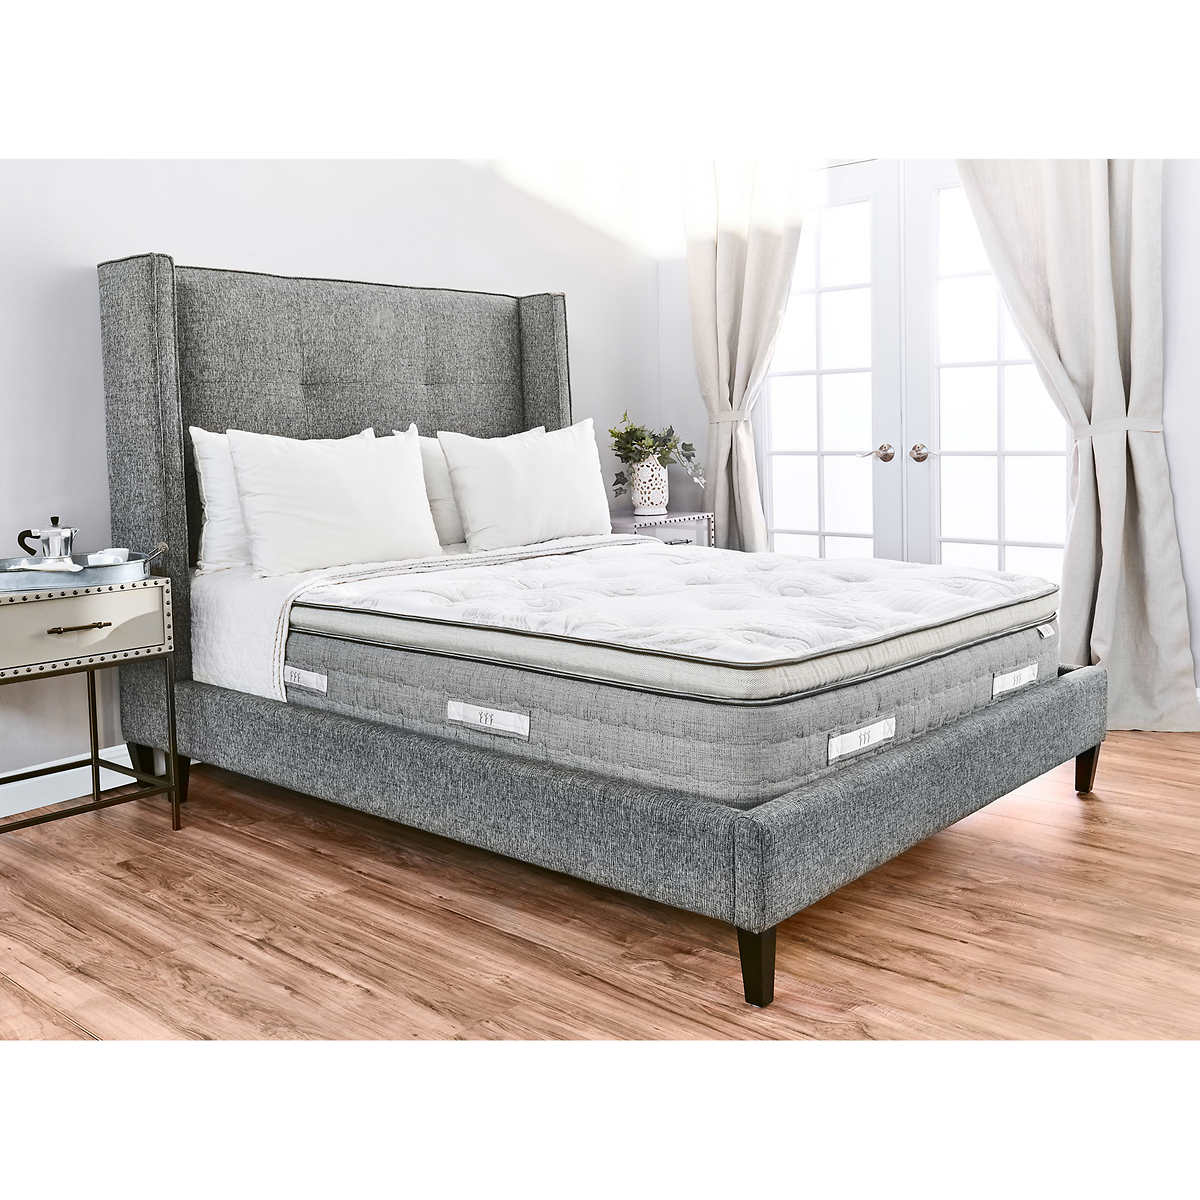 best service dc314 817a3 Brentwood Home Sequoia Euro Pillow Top King Mattress